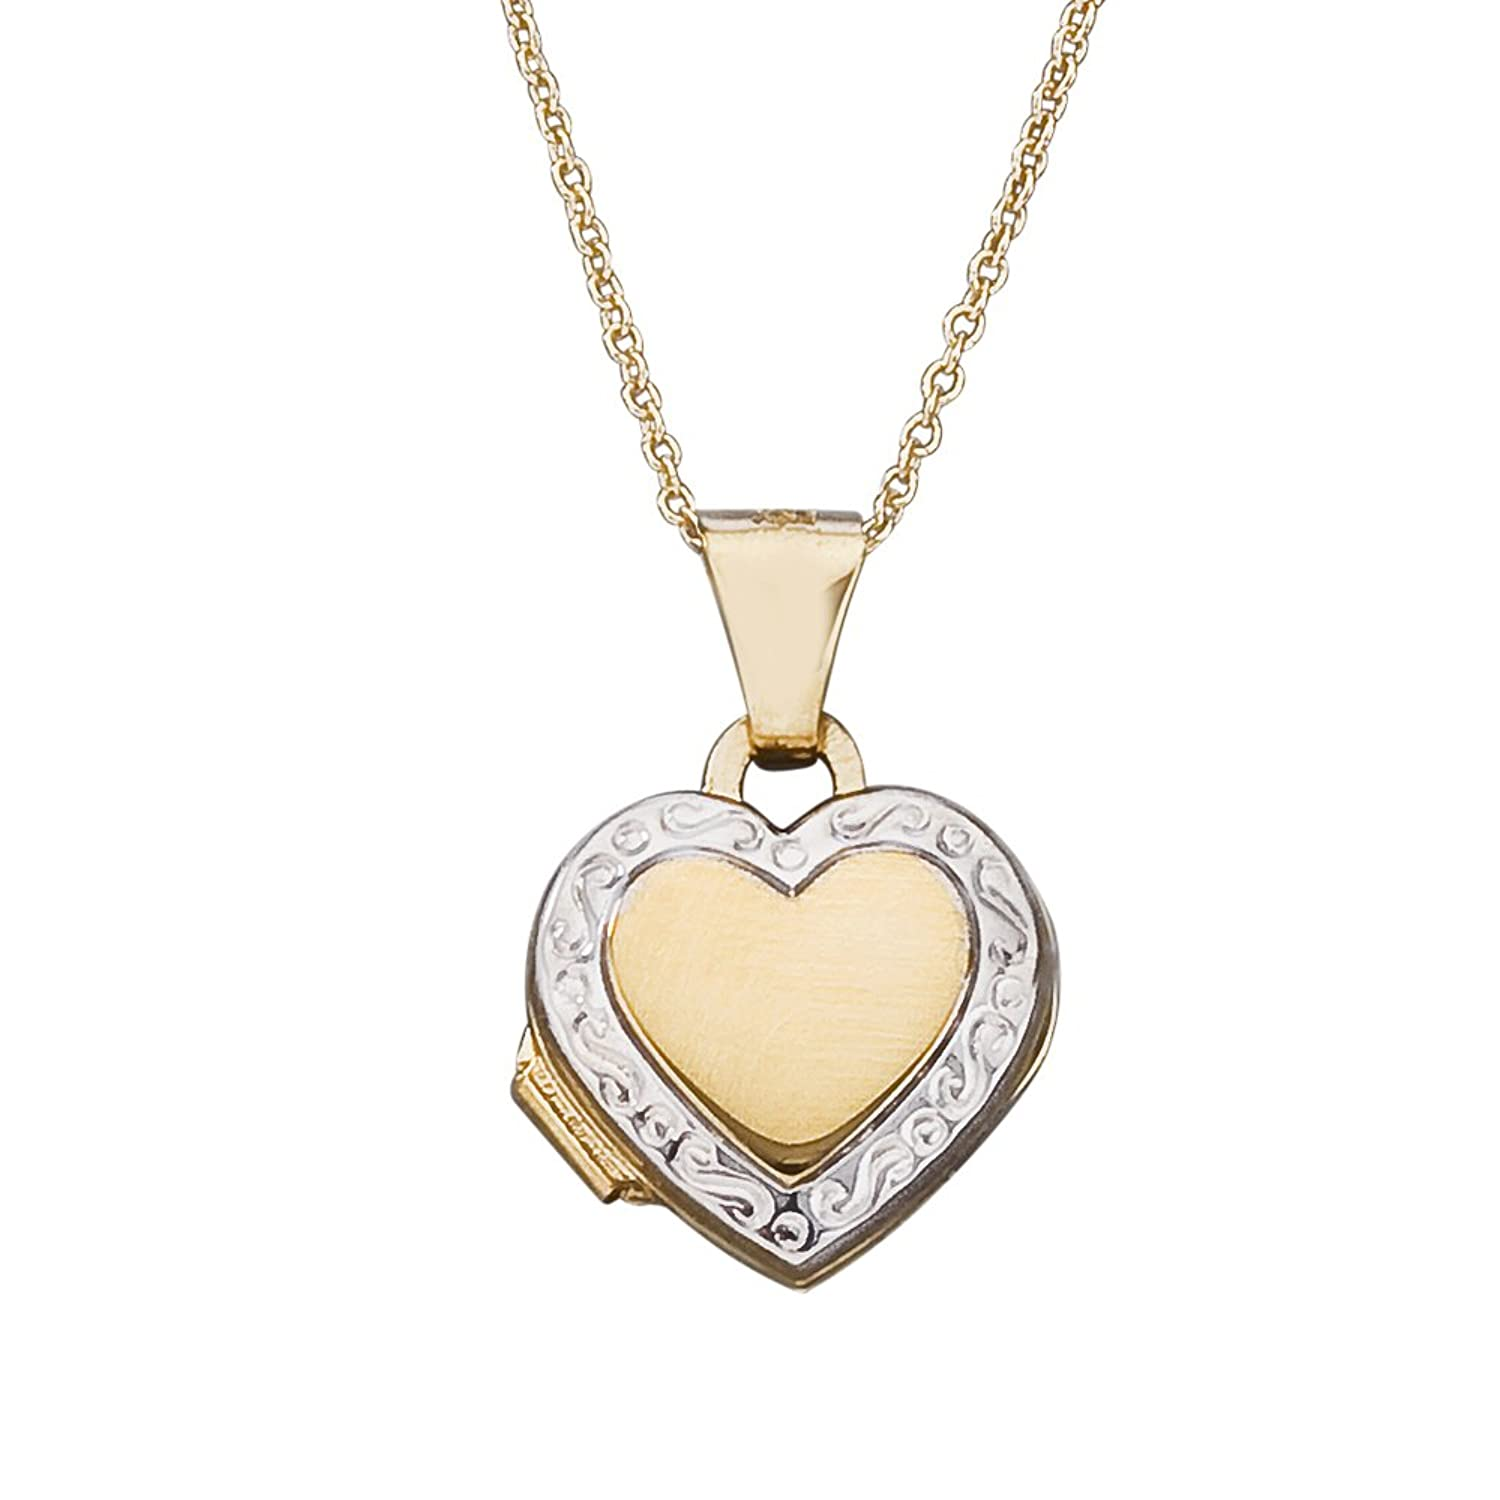 s lockets locket and heart meenaz with chain pdp plated women gold ps beautiful alphabet jewmeenaz for letter letmeenaecc men pendant